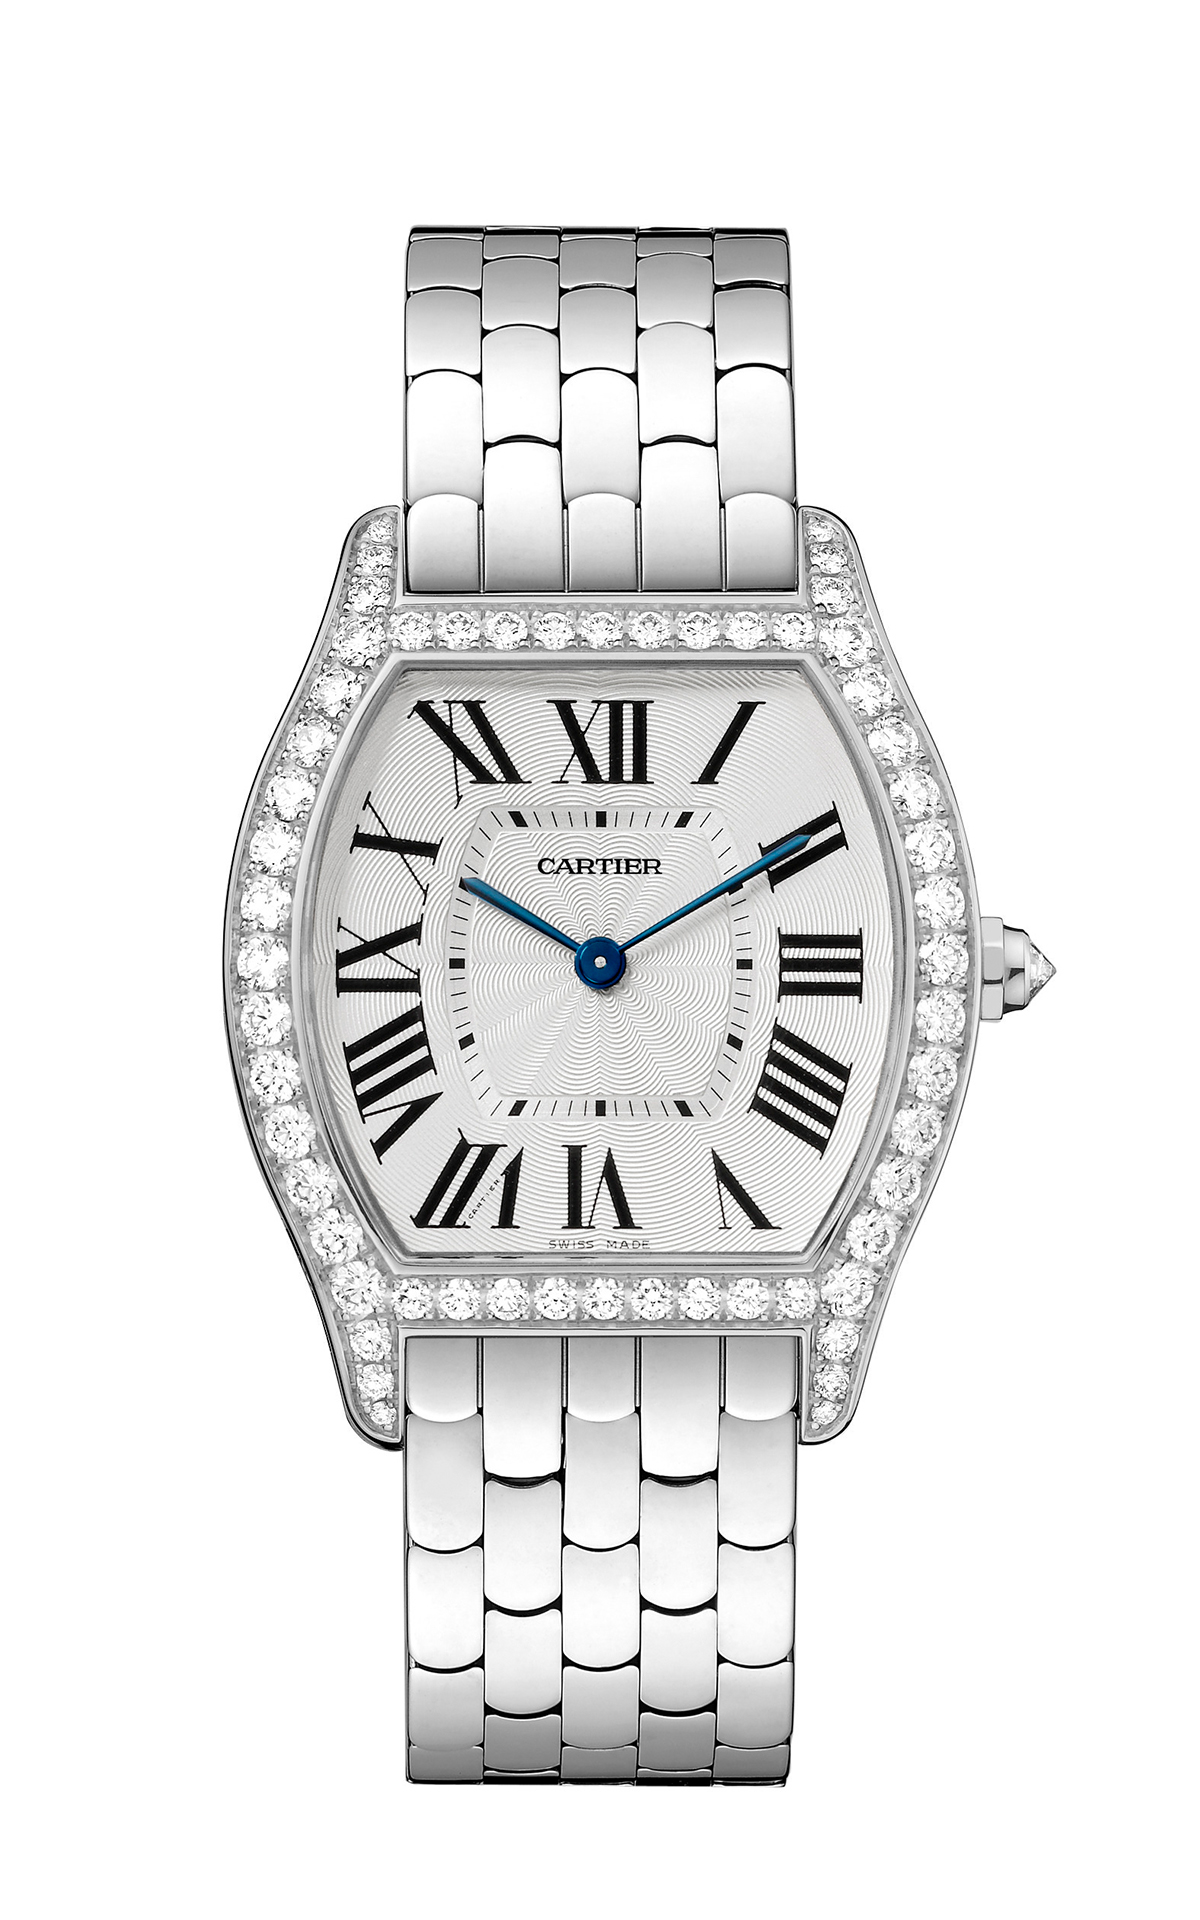 Tortue by Cartier, medium-sized model, white gold and diamonds